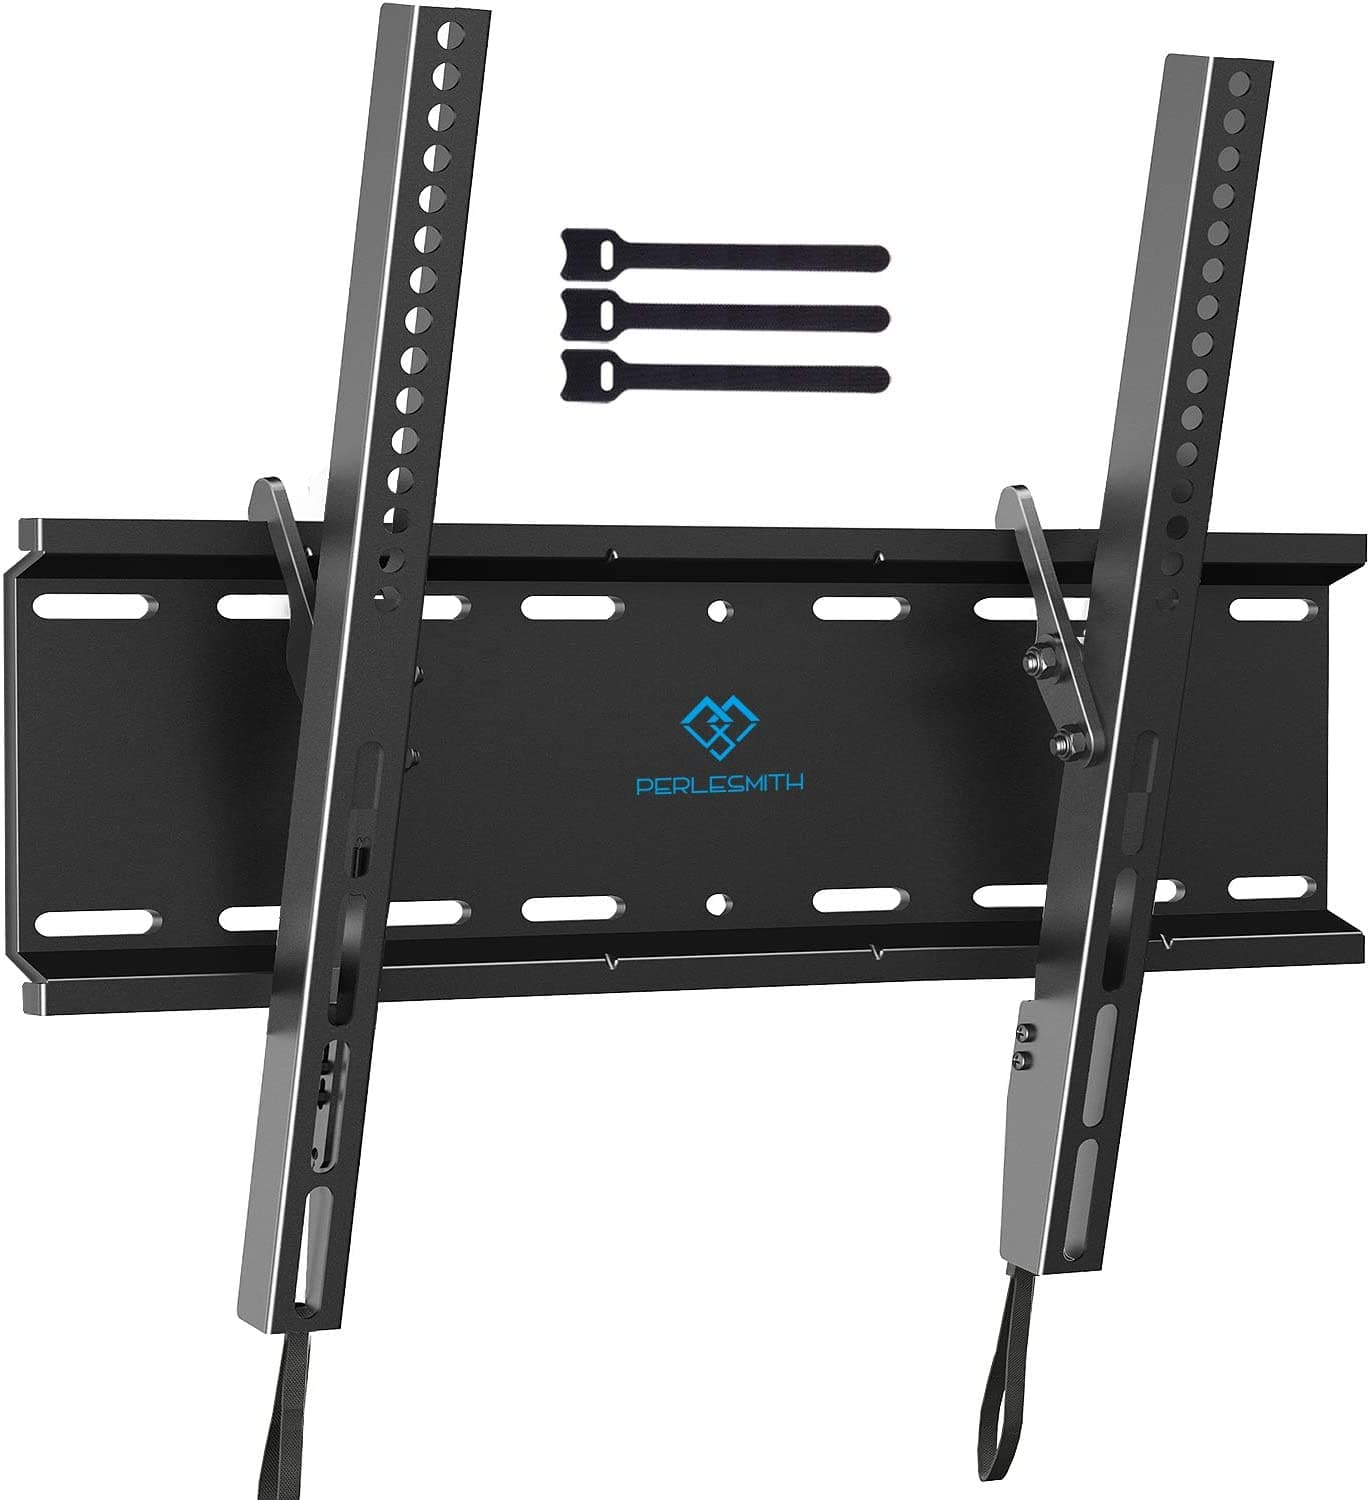 Tilting TV Wall Mount for 23-55 Inch TVs-115lbs only $6.27 + Free Shipping w/ Amazon Prime or Orders $25+